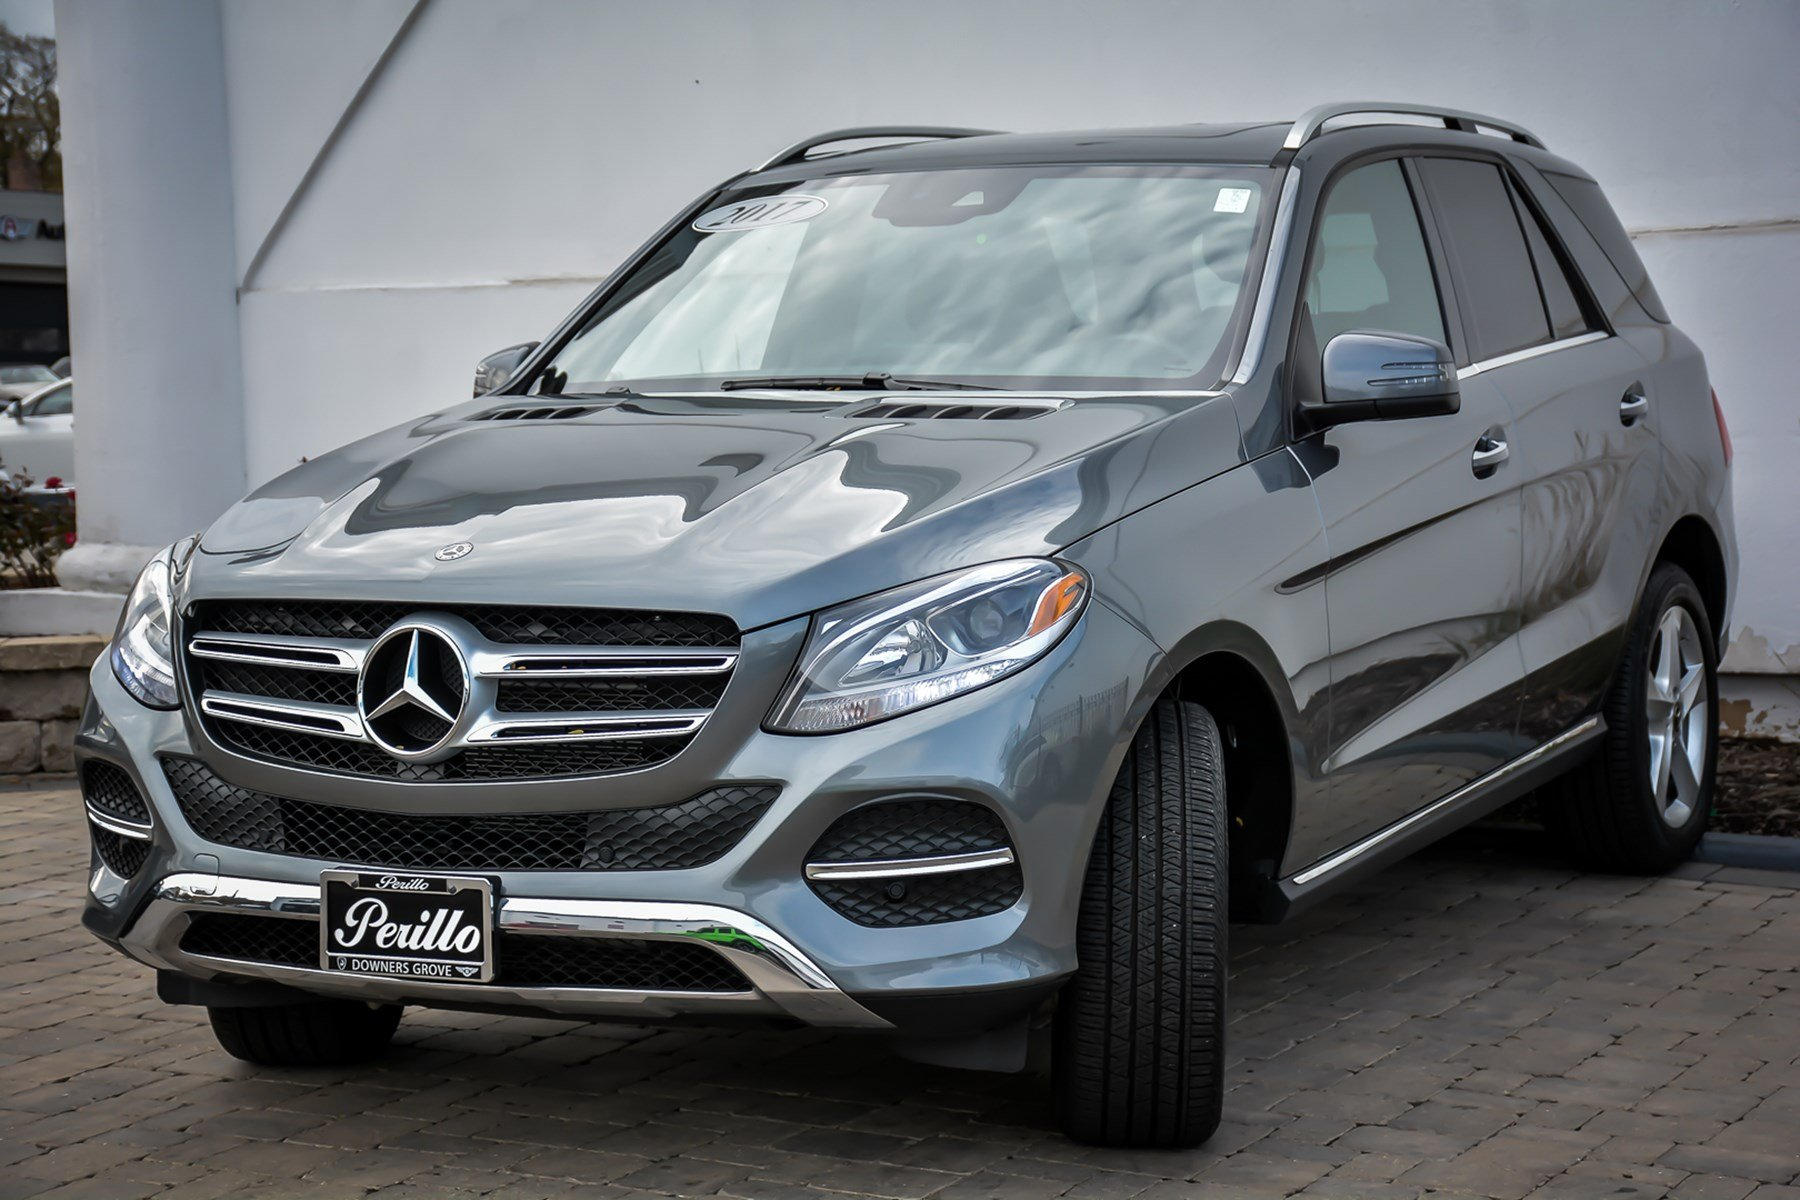 Pre-Owned 2017 Mercedes-Benz GLE GLE 350 Premium With Navigation